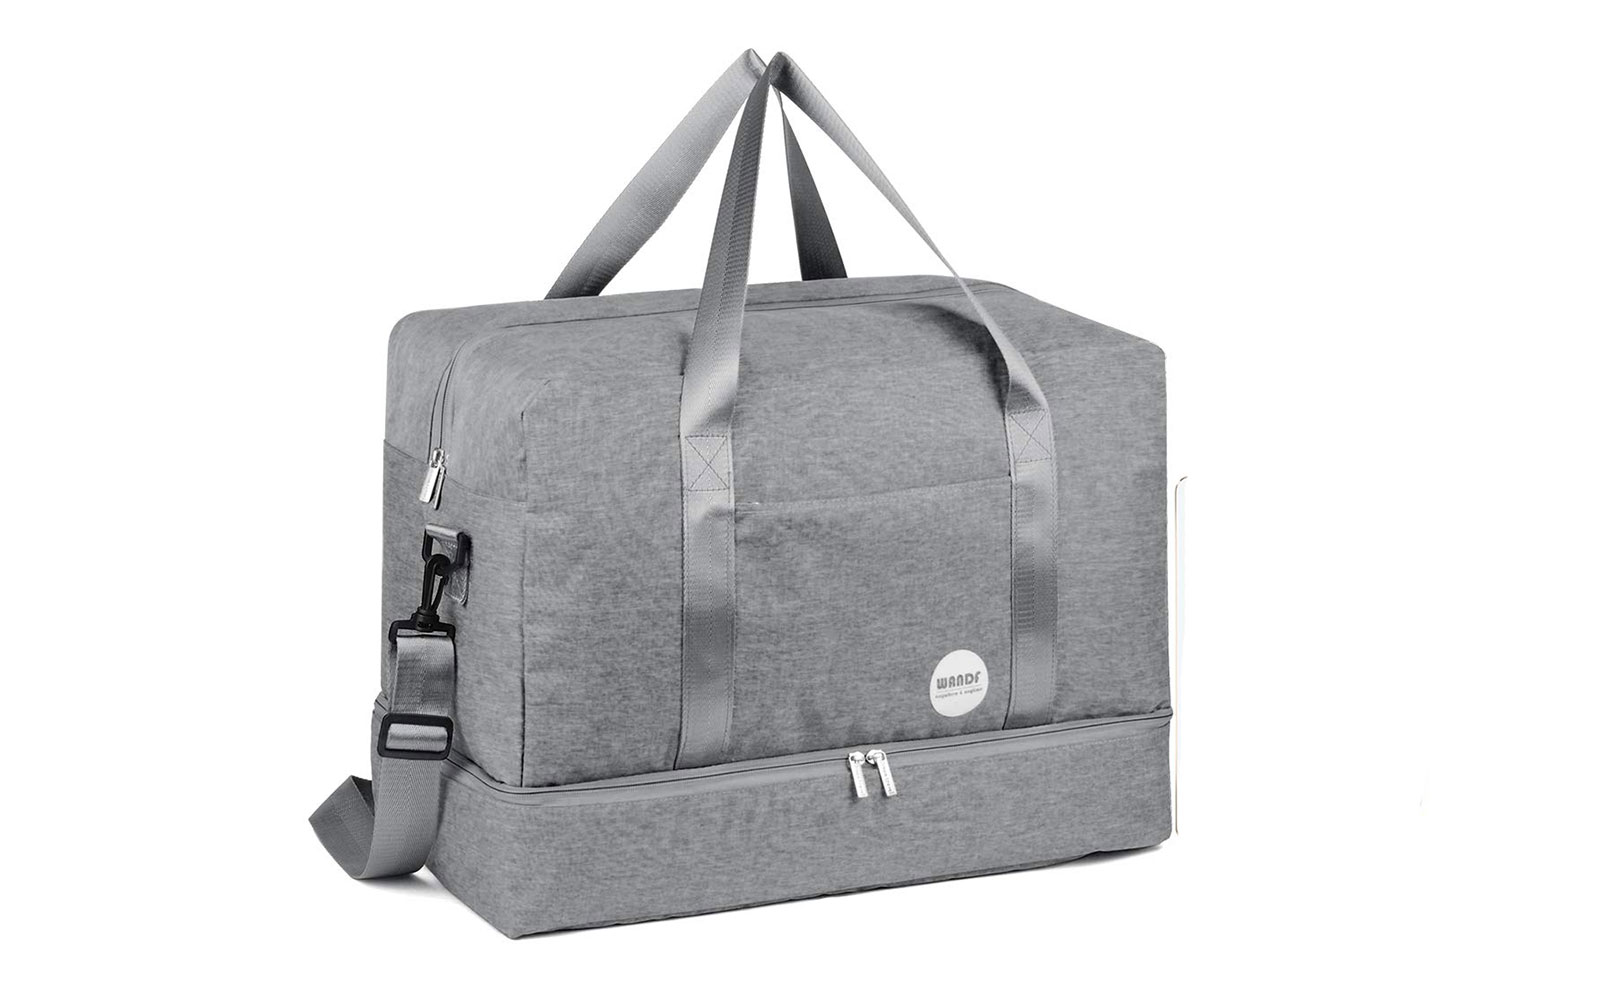 WANDF 16  / 20  Gym Bag Sports Duffle with Wet Pocket and Shoes Compartment